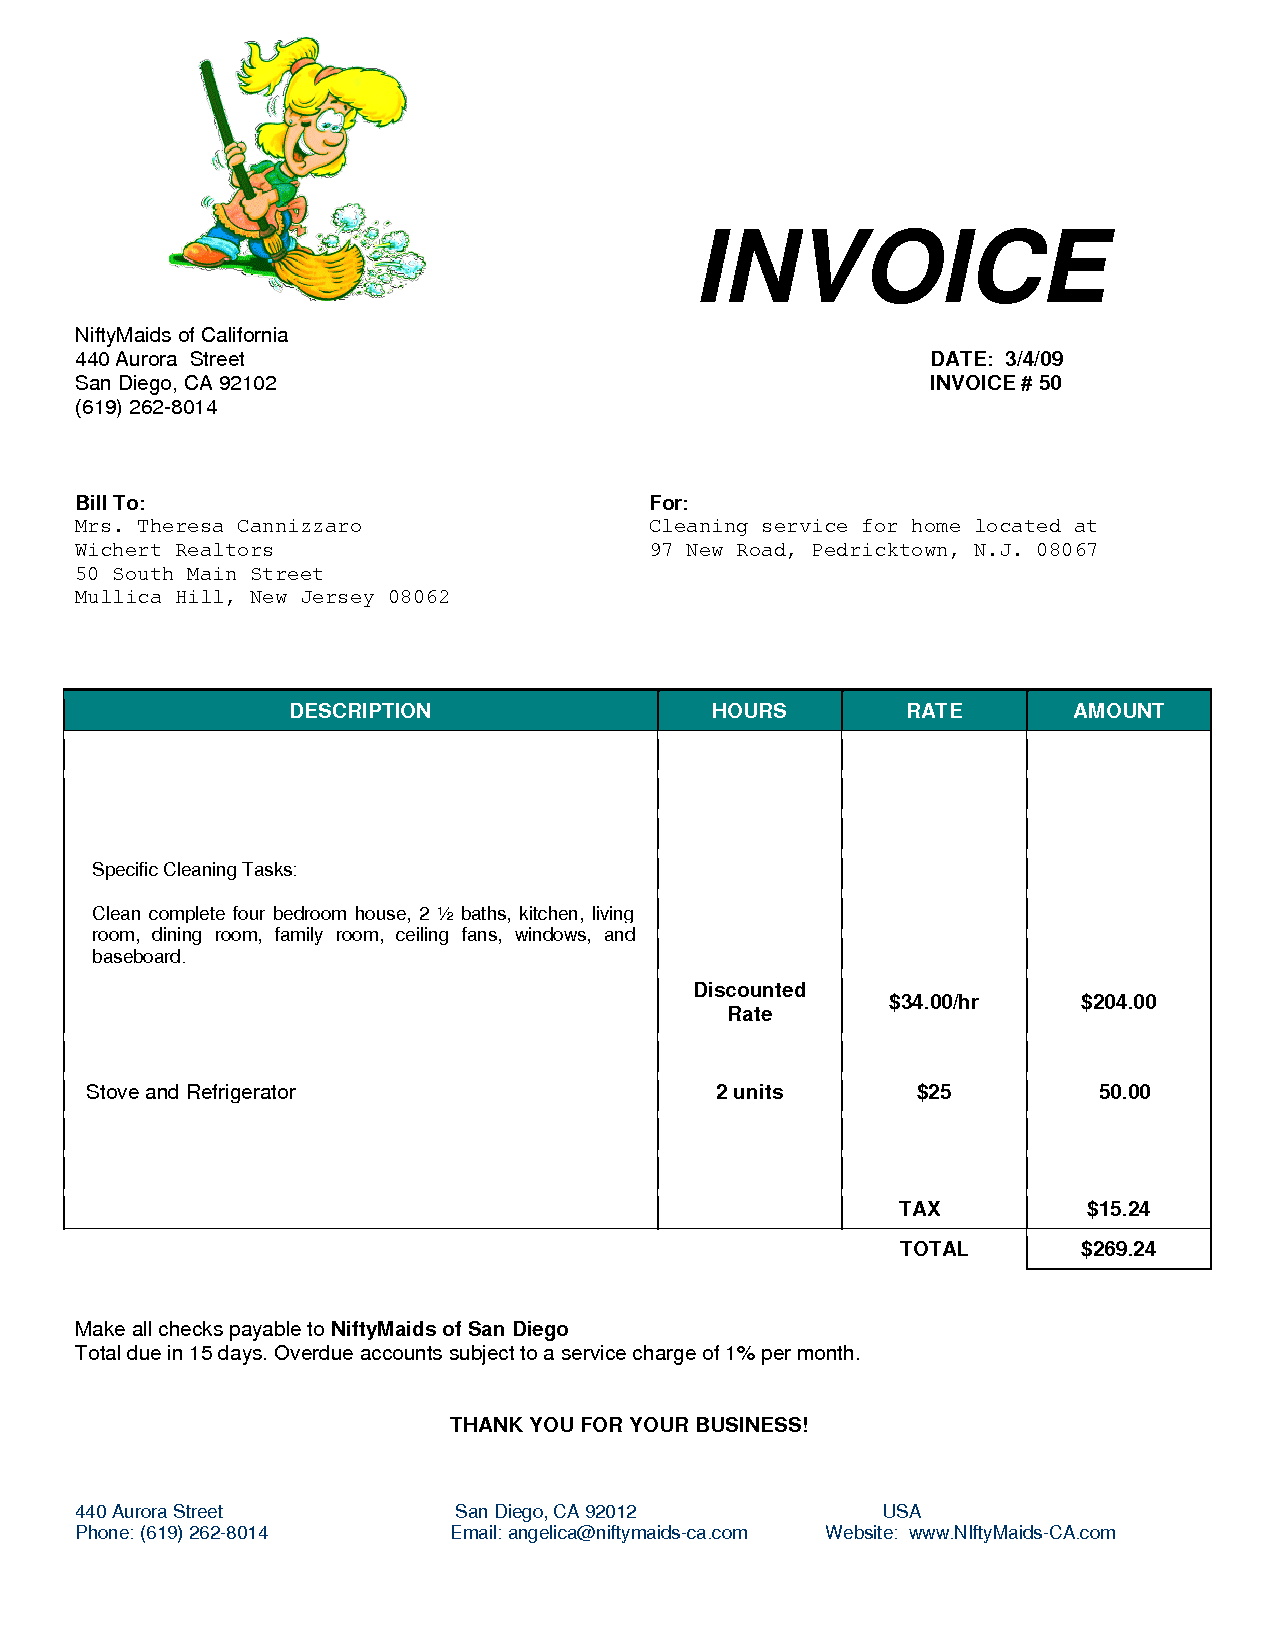 Cleaning Bill Invoice Services Invoice Ideas For The House - Free open office invoice template for service business